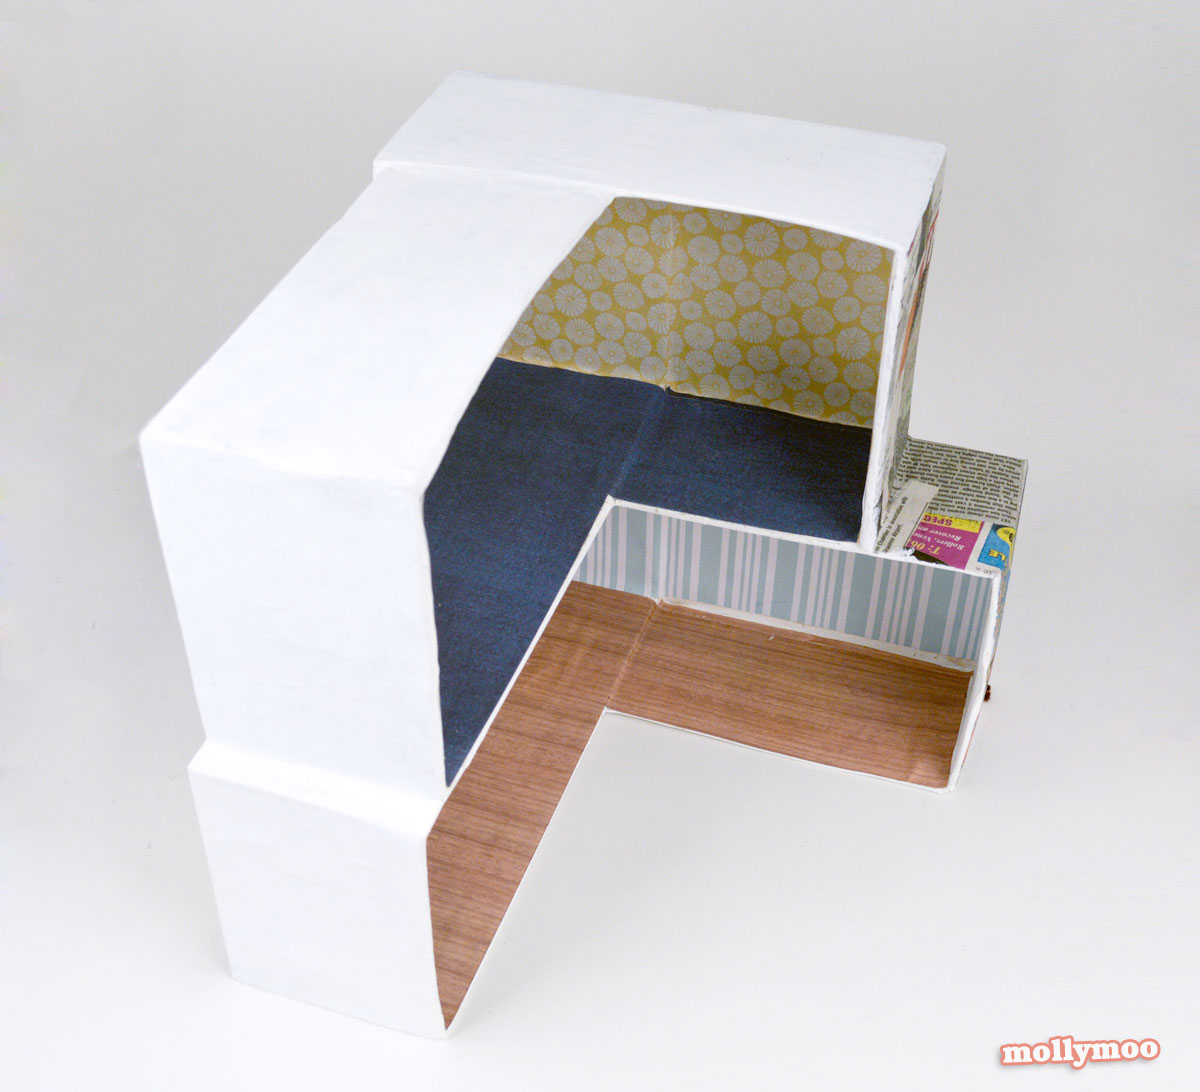 DIY cardboard dollshouse by Michelle McInerney of MollyMoo